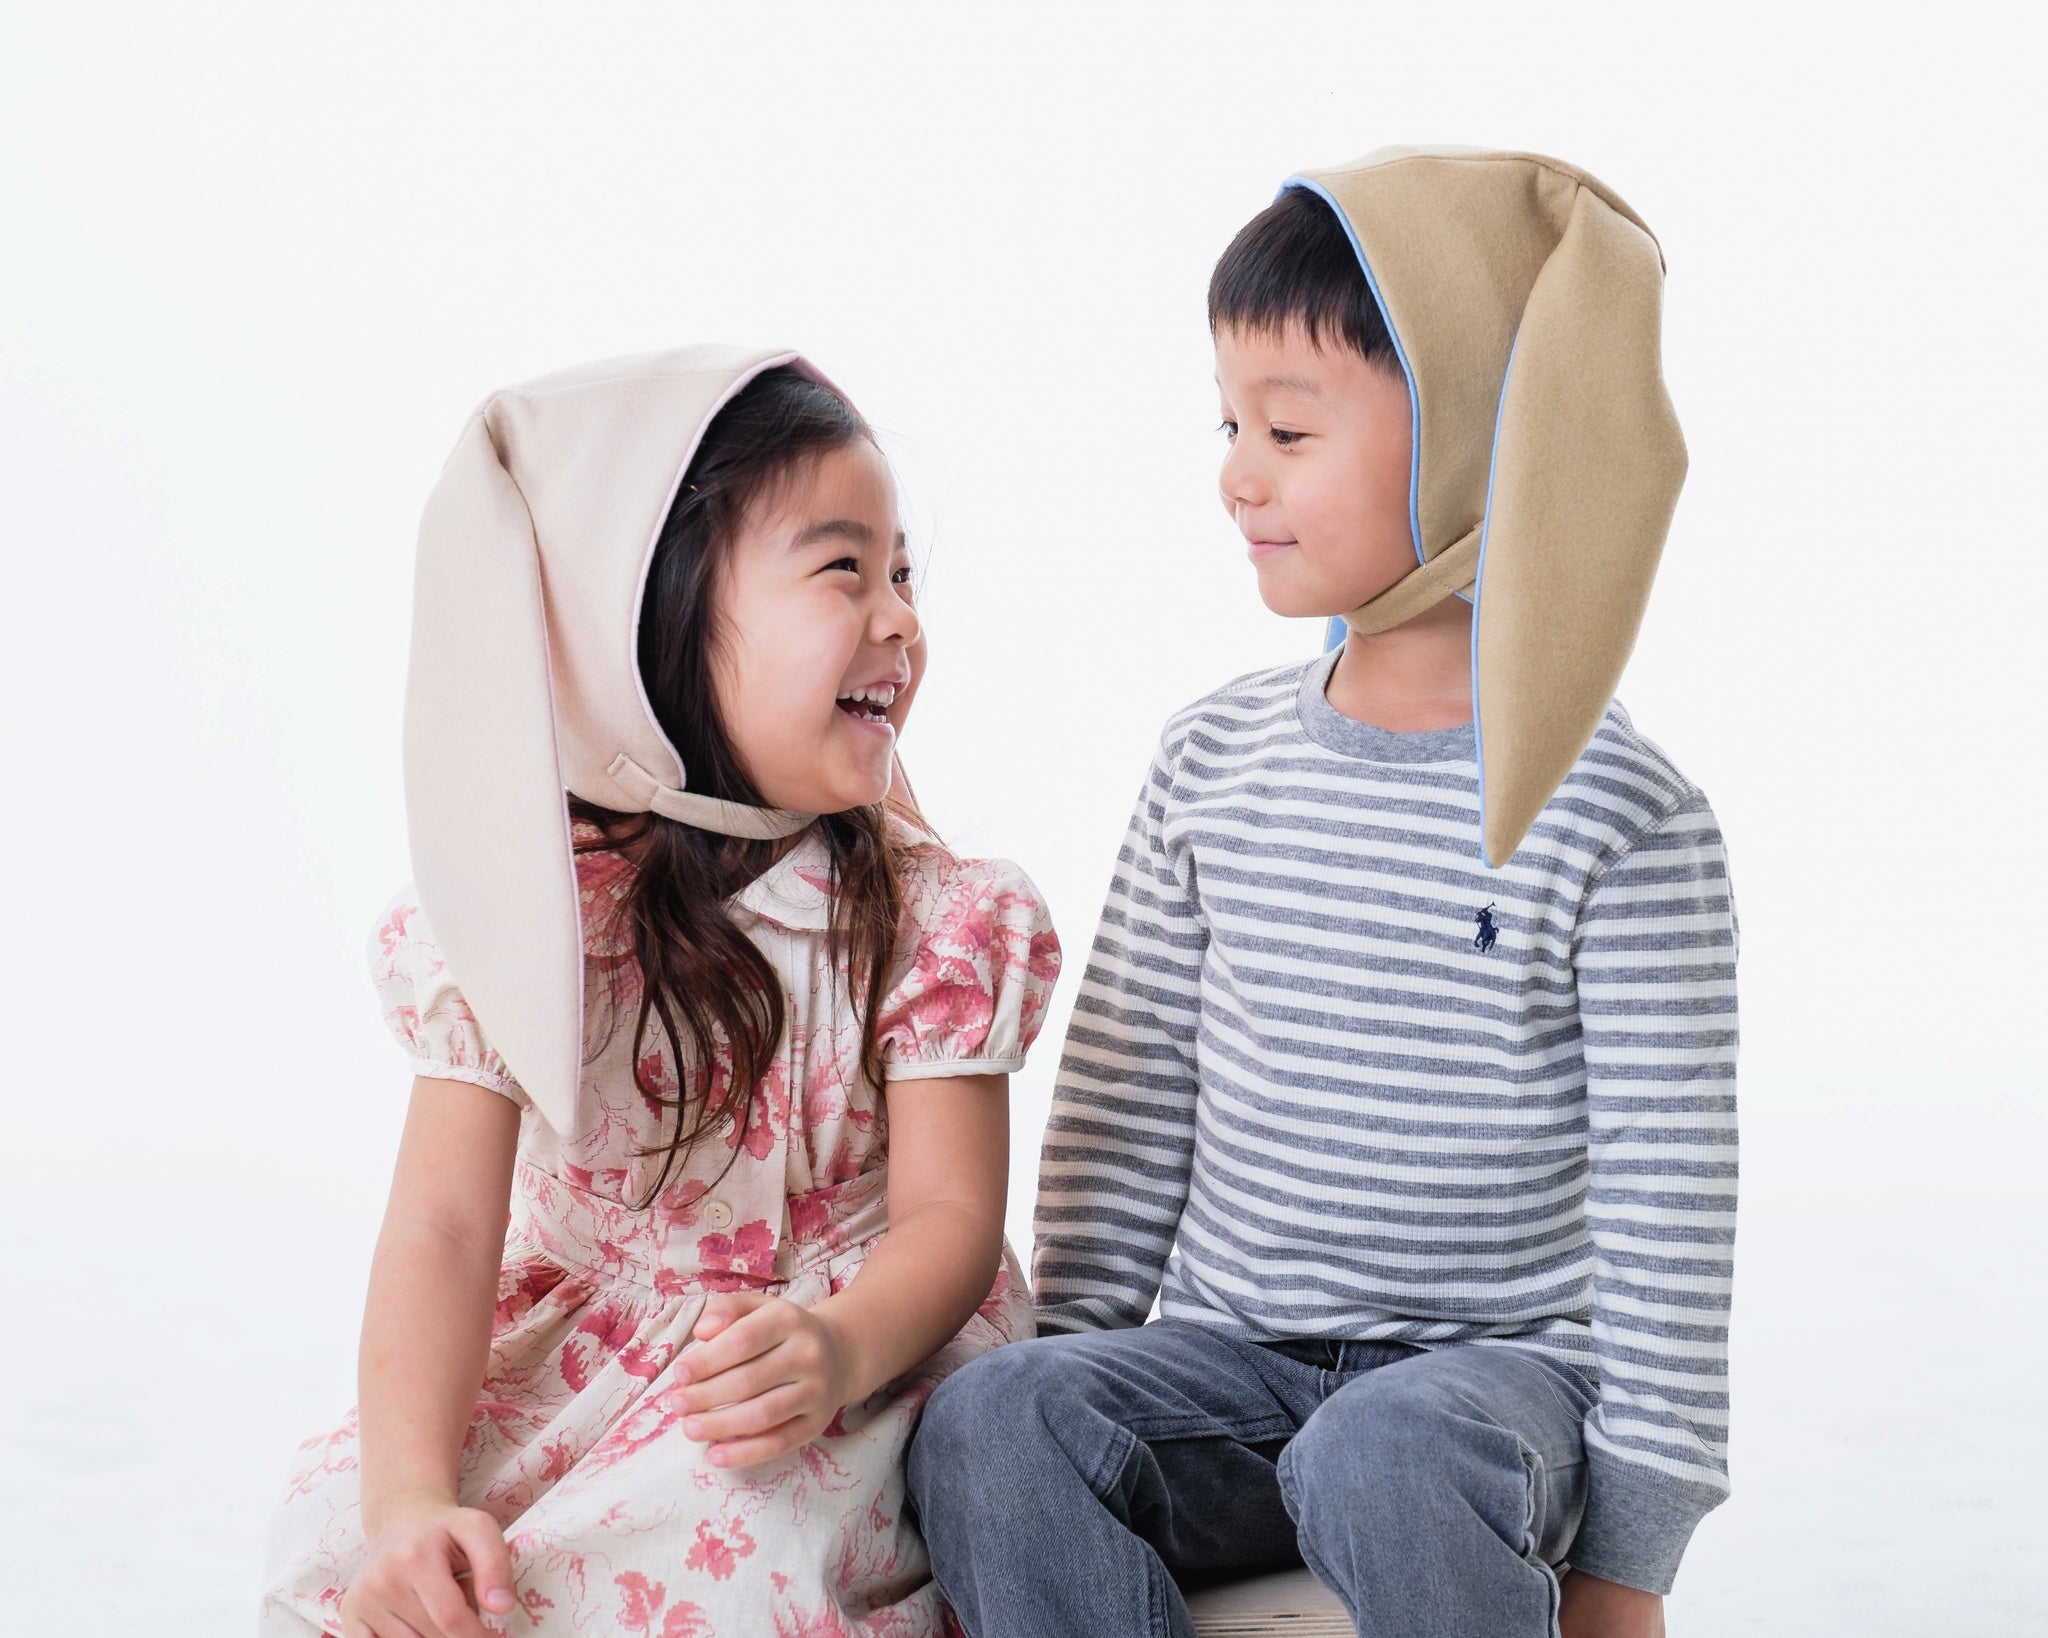 Girl model wearing a light tan bunny and hat and a boy model wearing dark tan bunny hat.